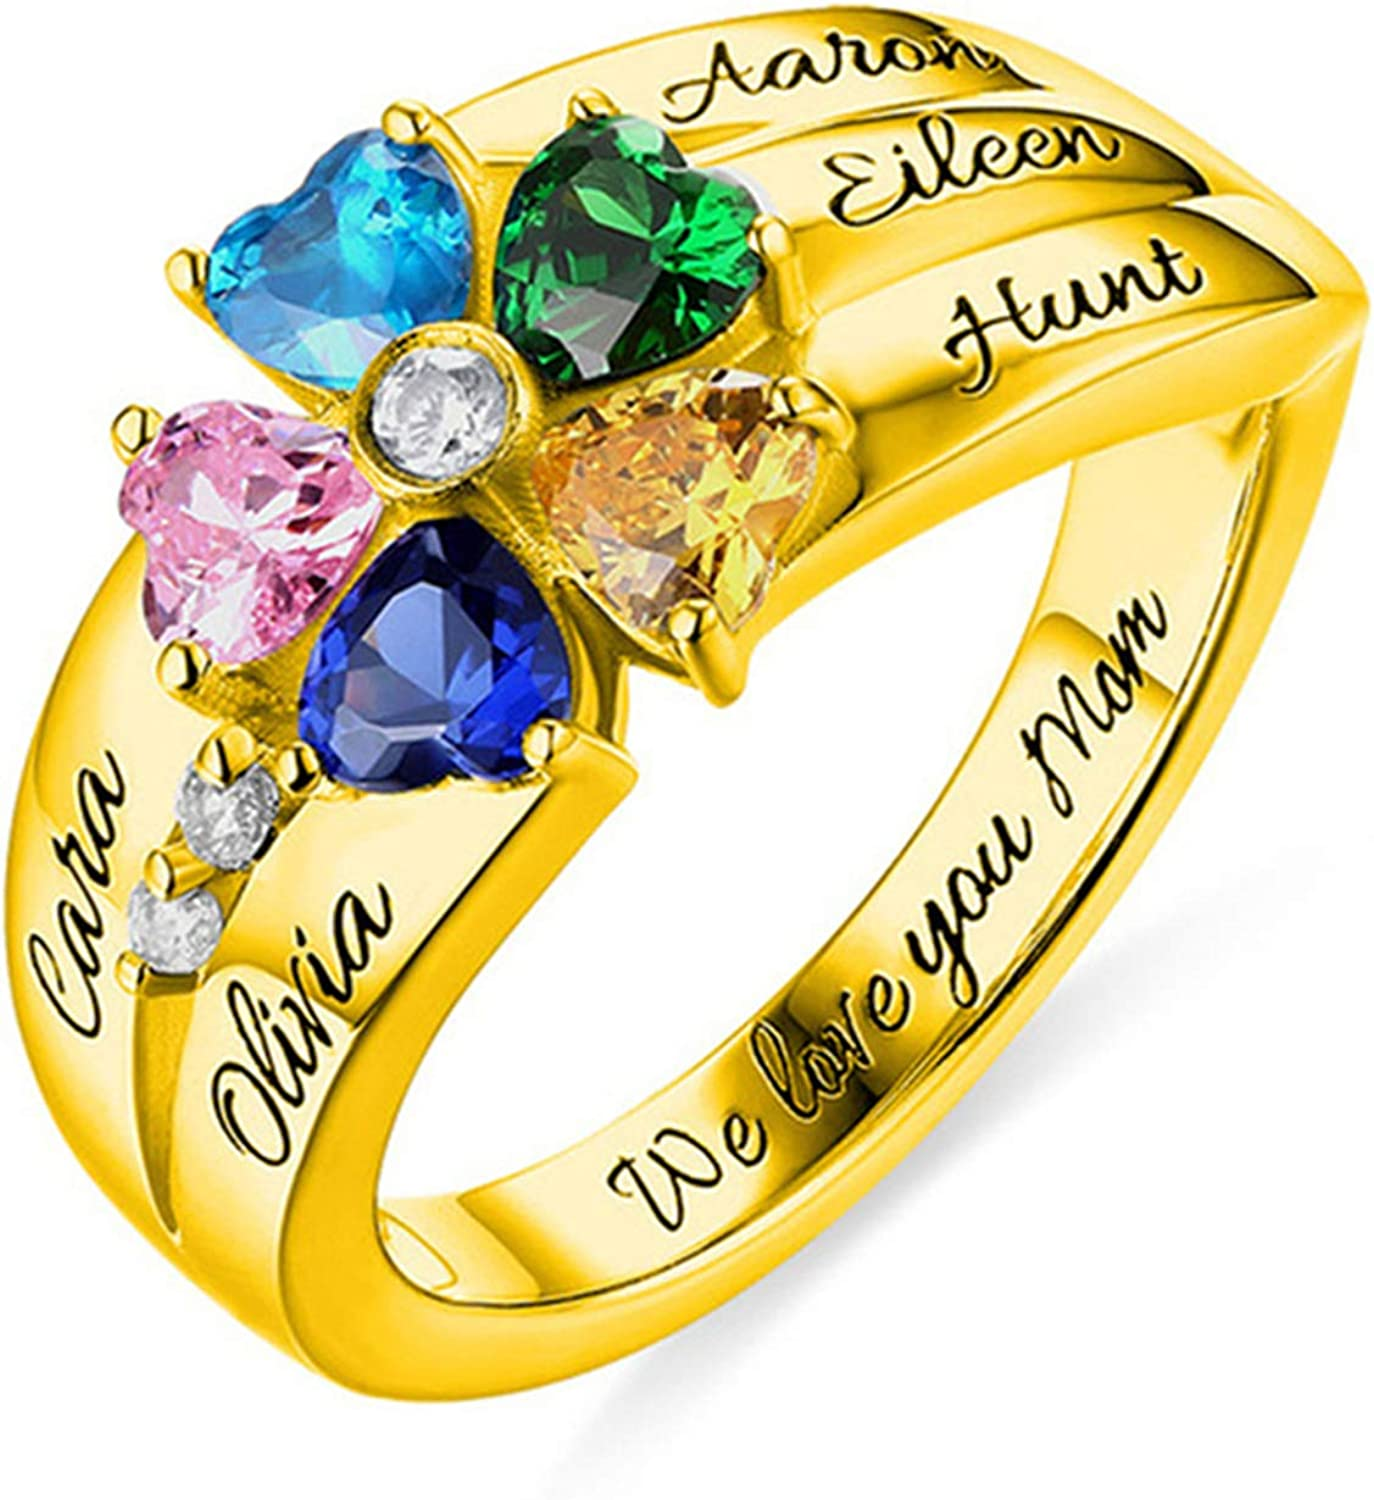 Personalized Ring Engraved 5 Finally popular brand Birthstone Customized Name San Antonio Mall N